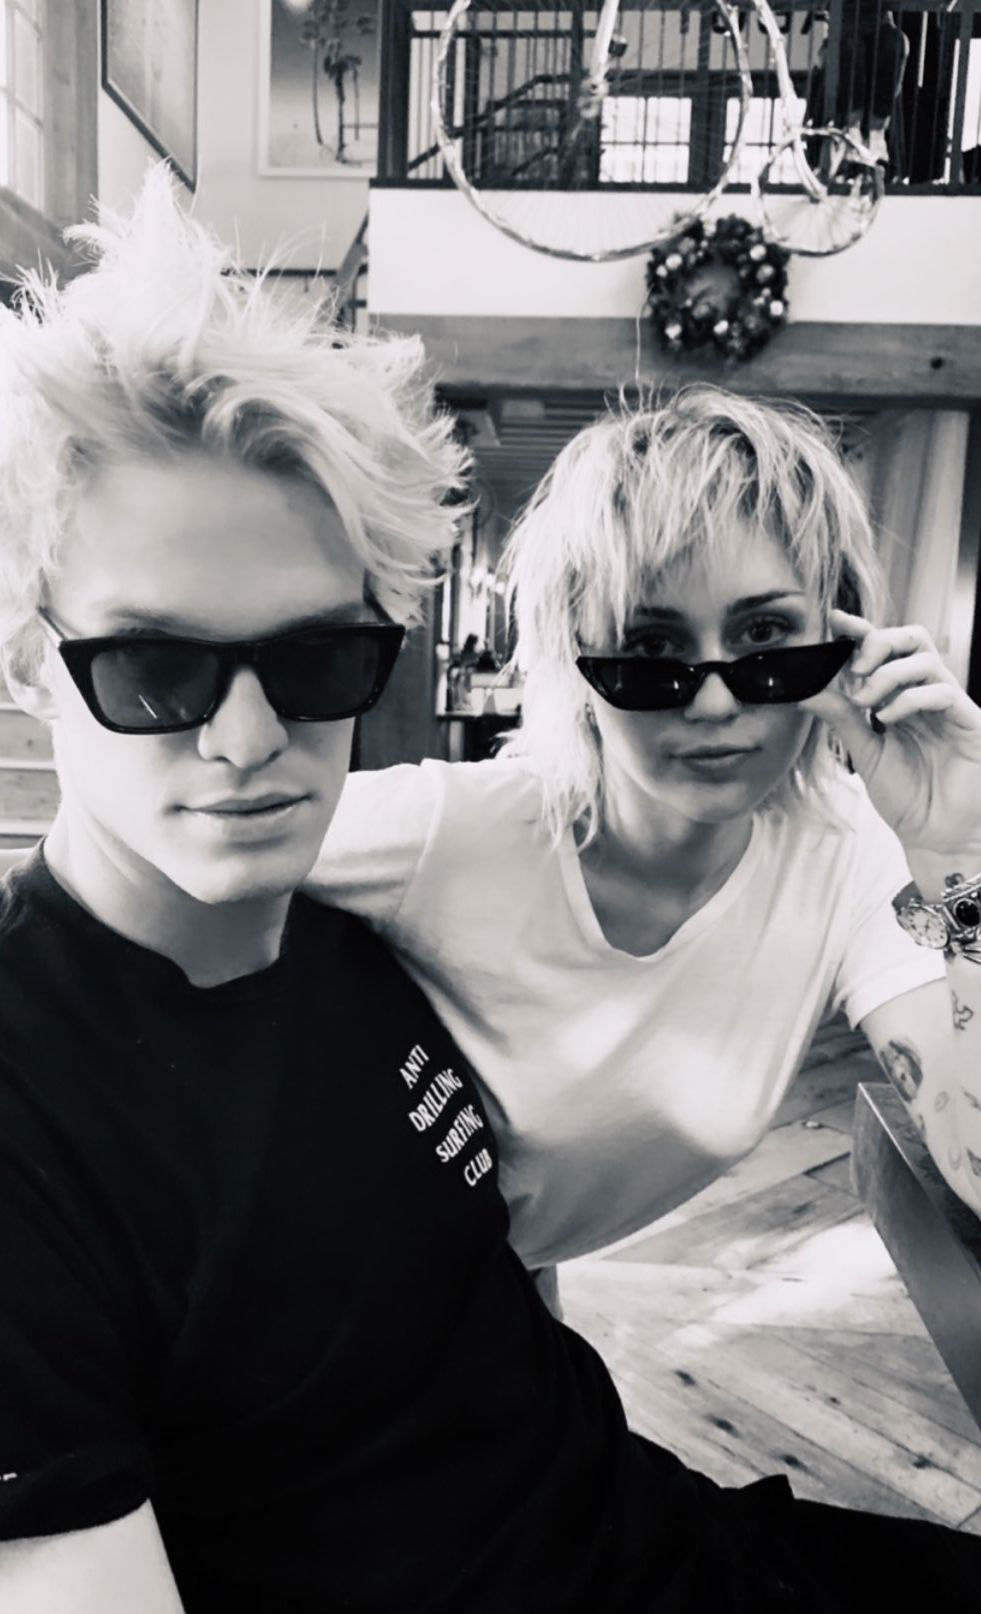 Miley Cyrus Cody Simpson Sport Matching Hair After Mullet Cut